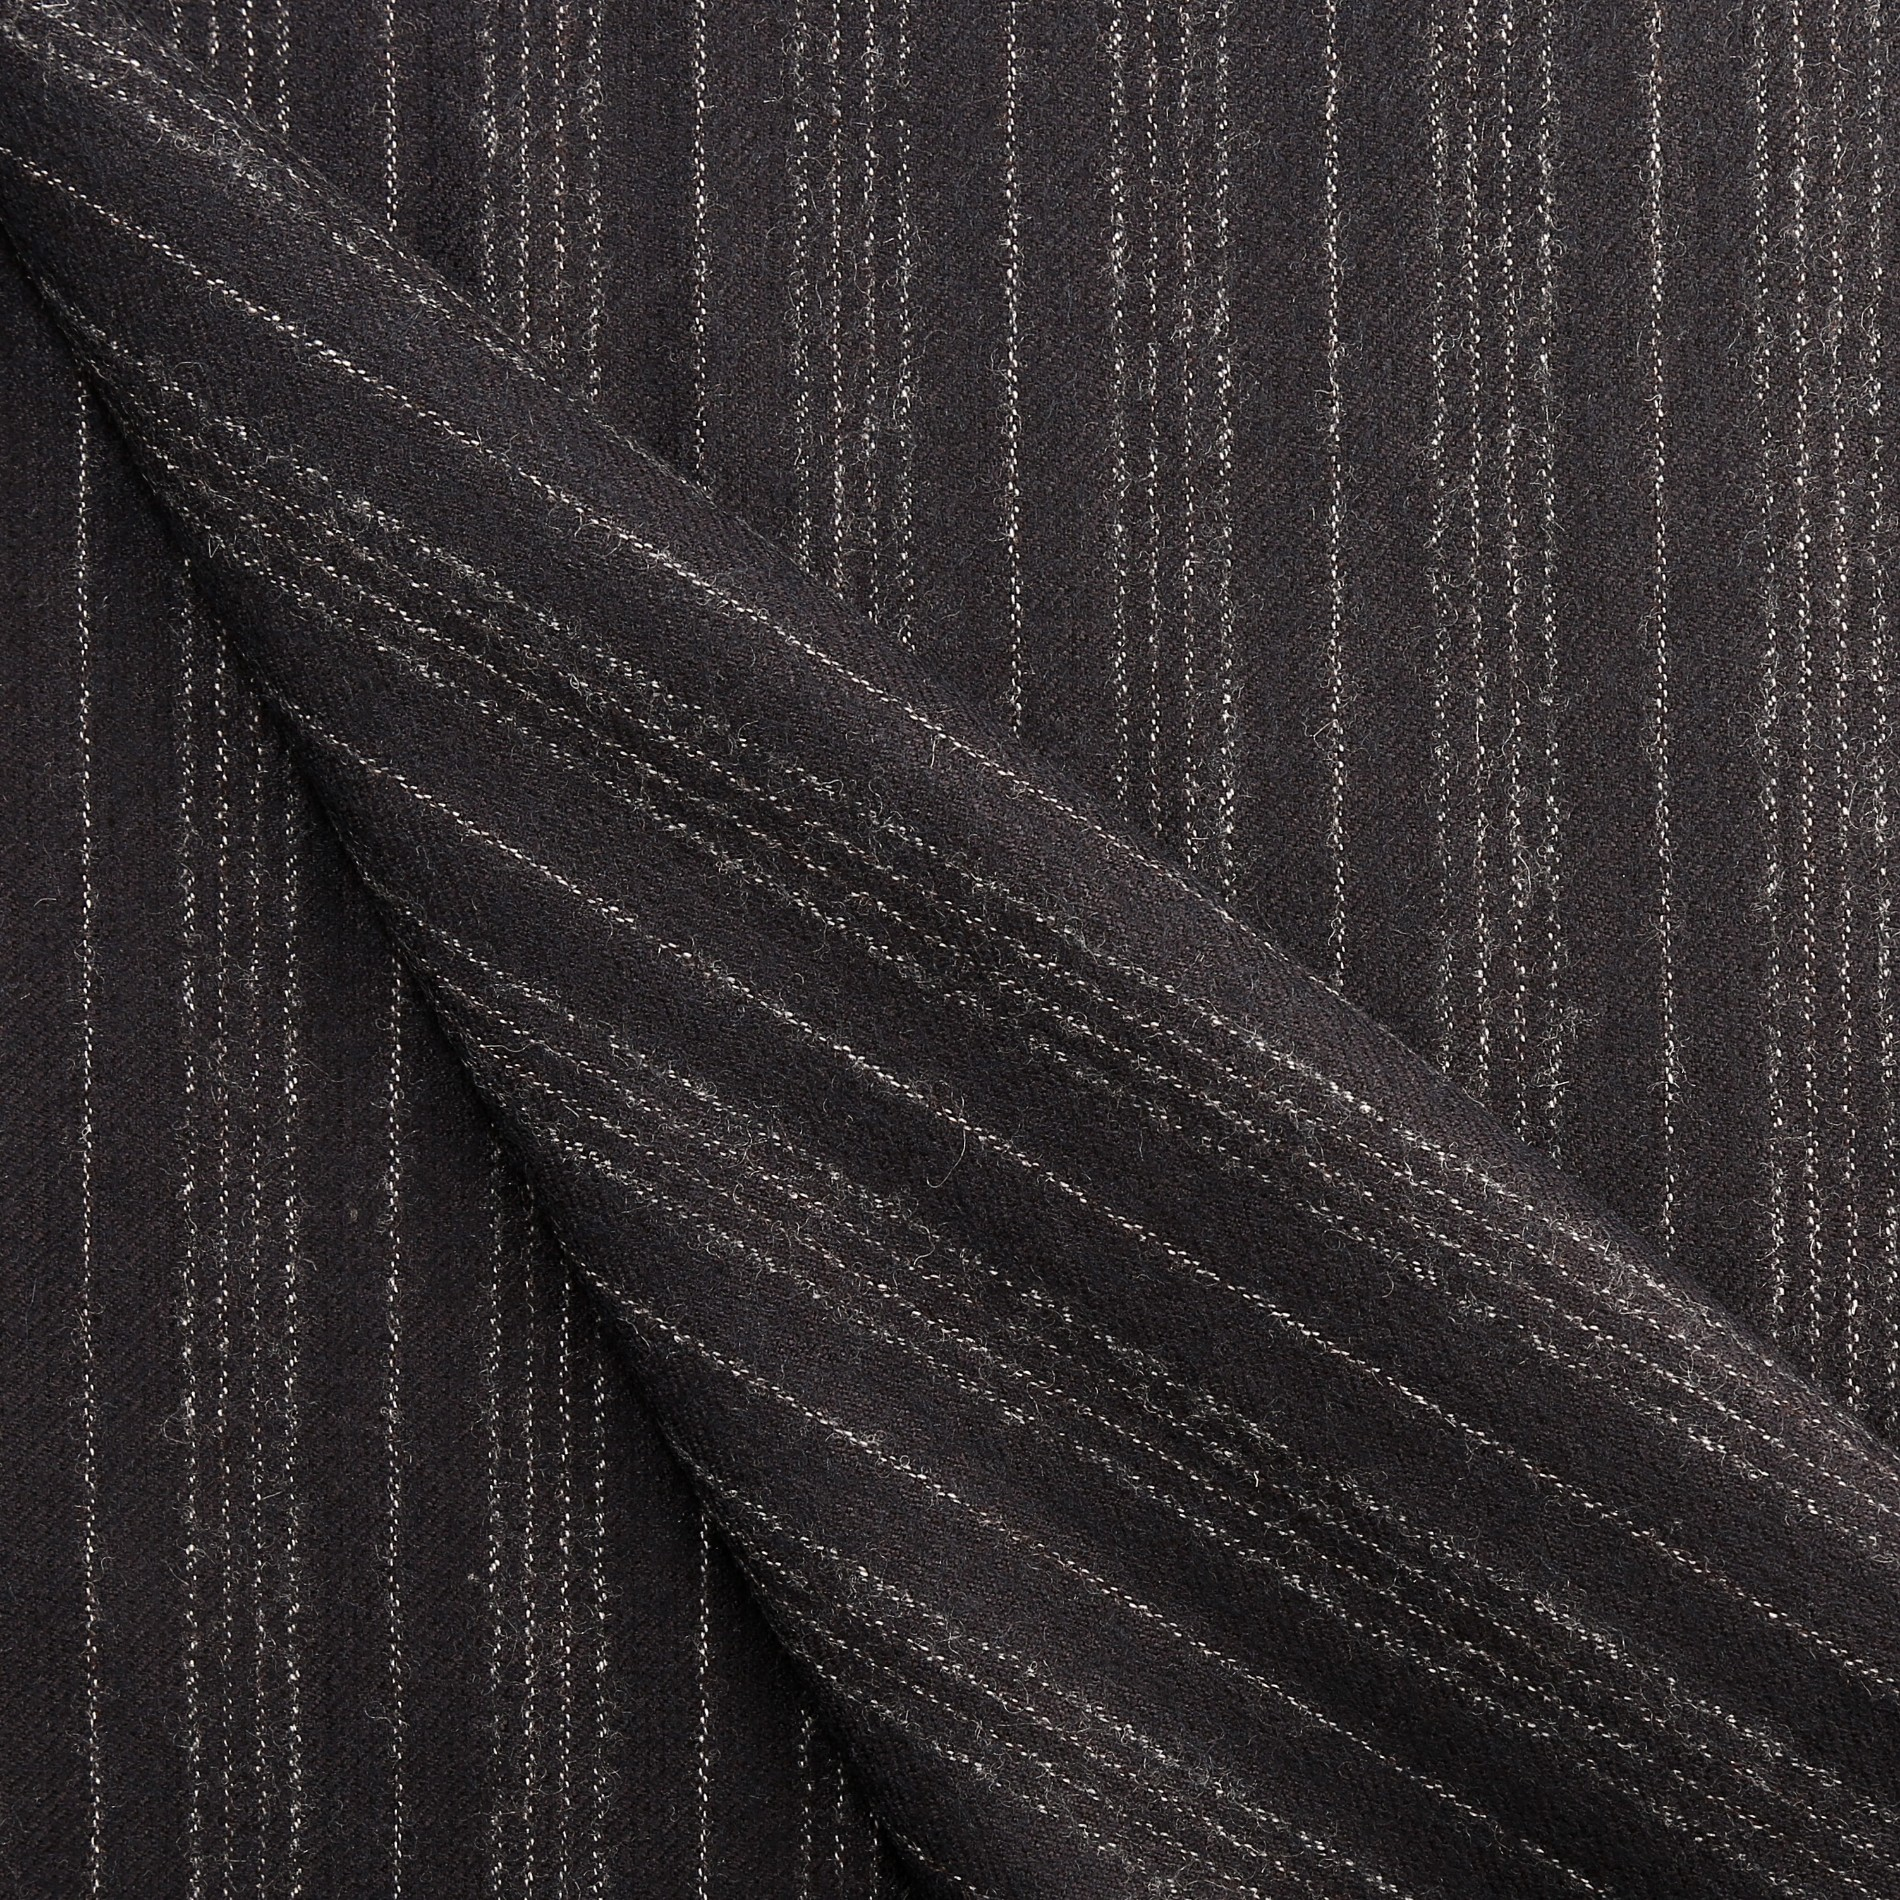 Black Worsted Wool Fabric